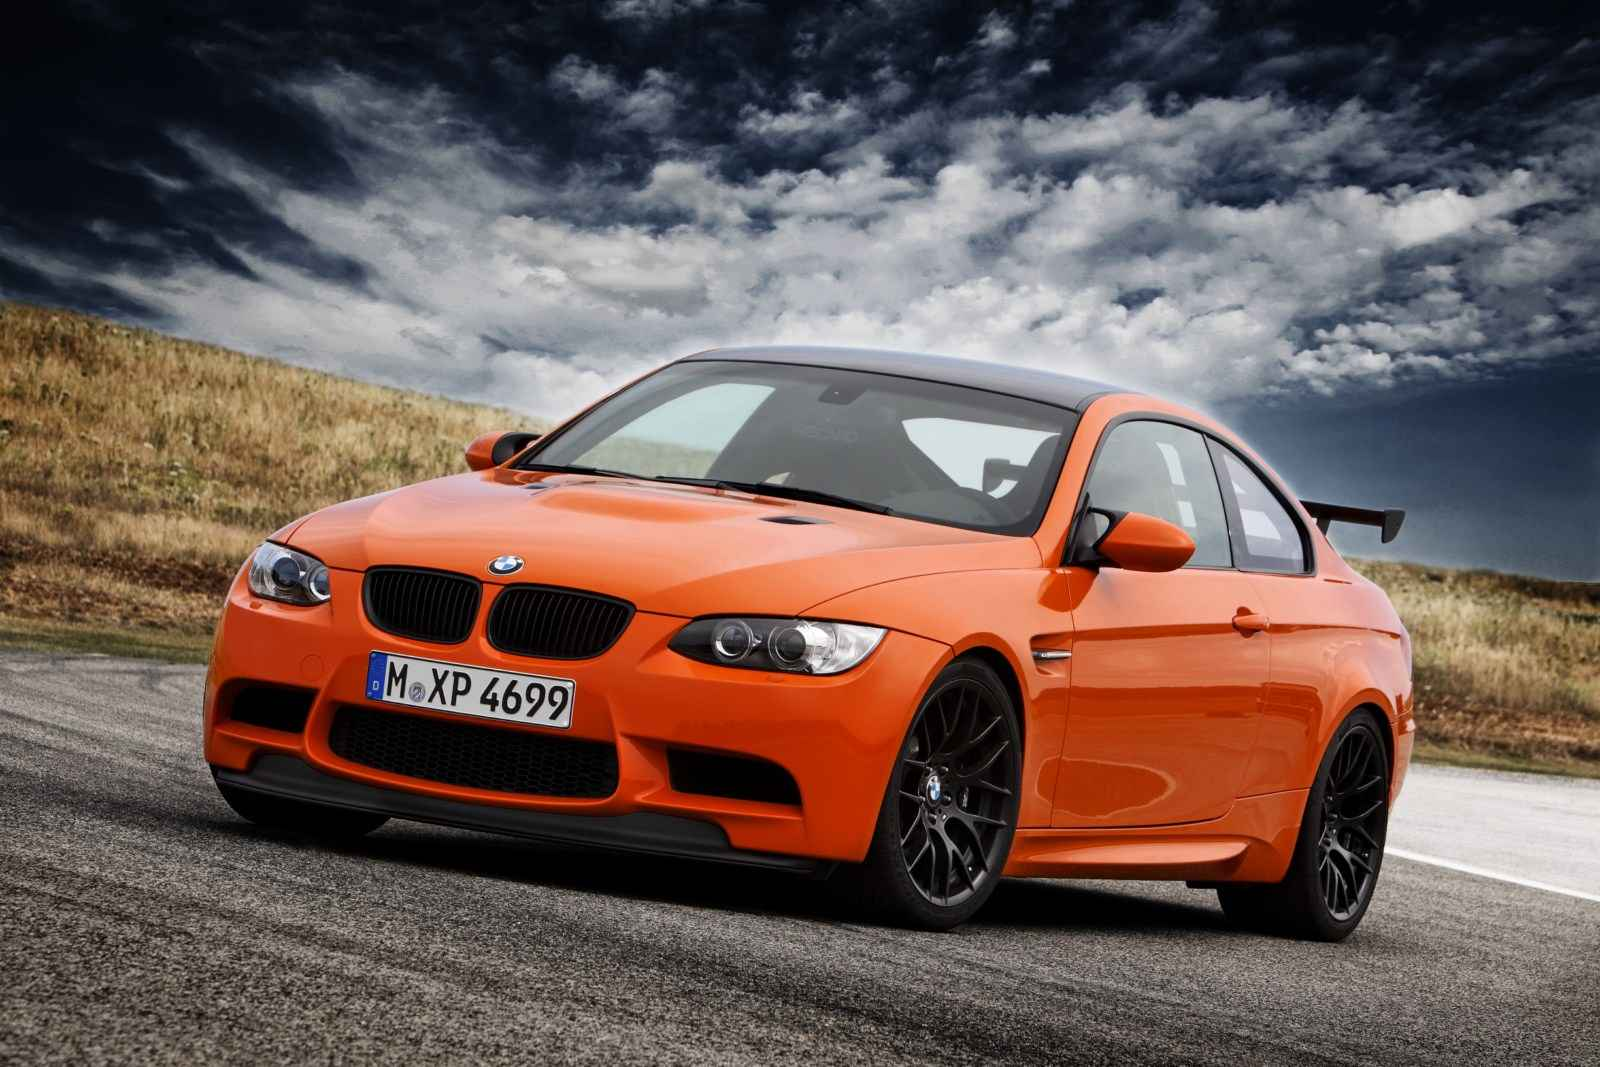 Bmw M3 2014 Coupe Orange Full Hd Eazy Wallpapers